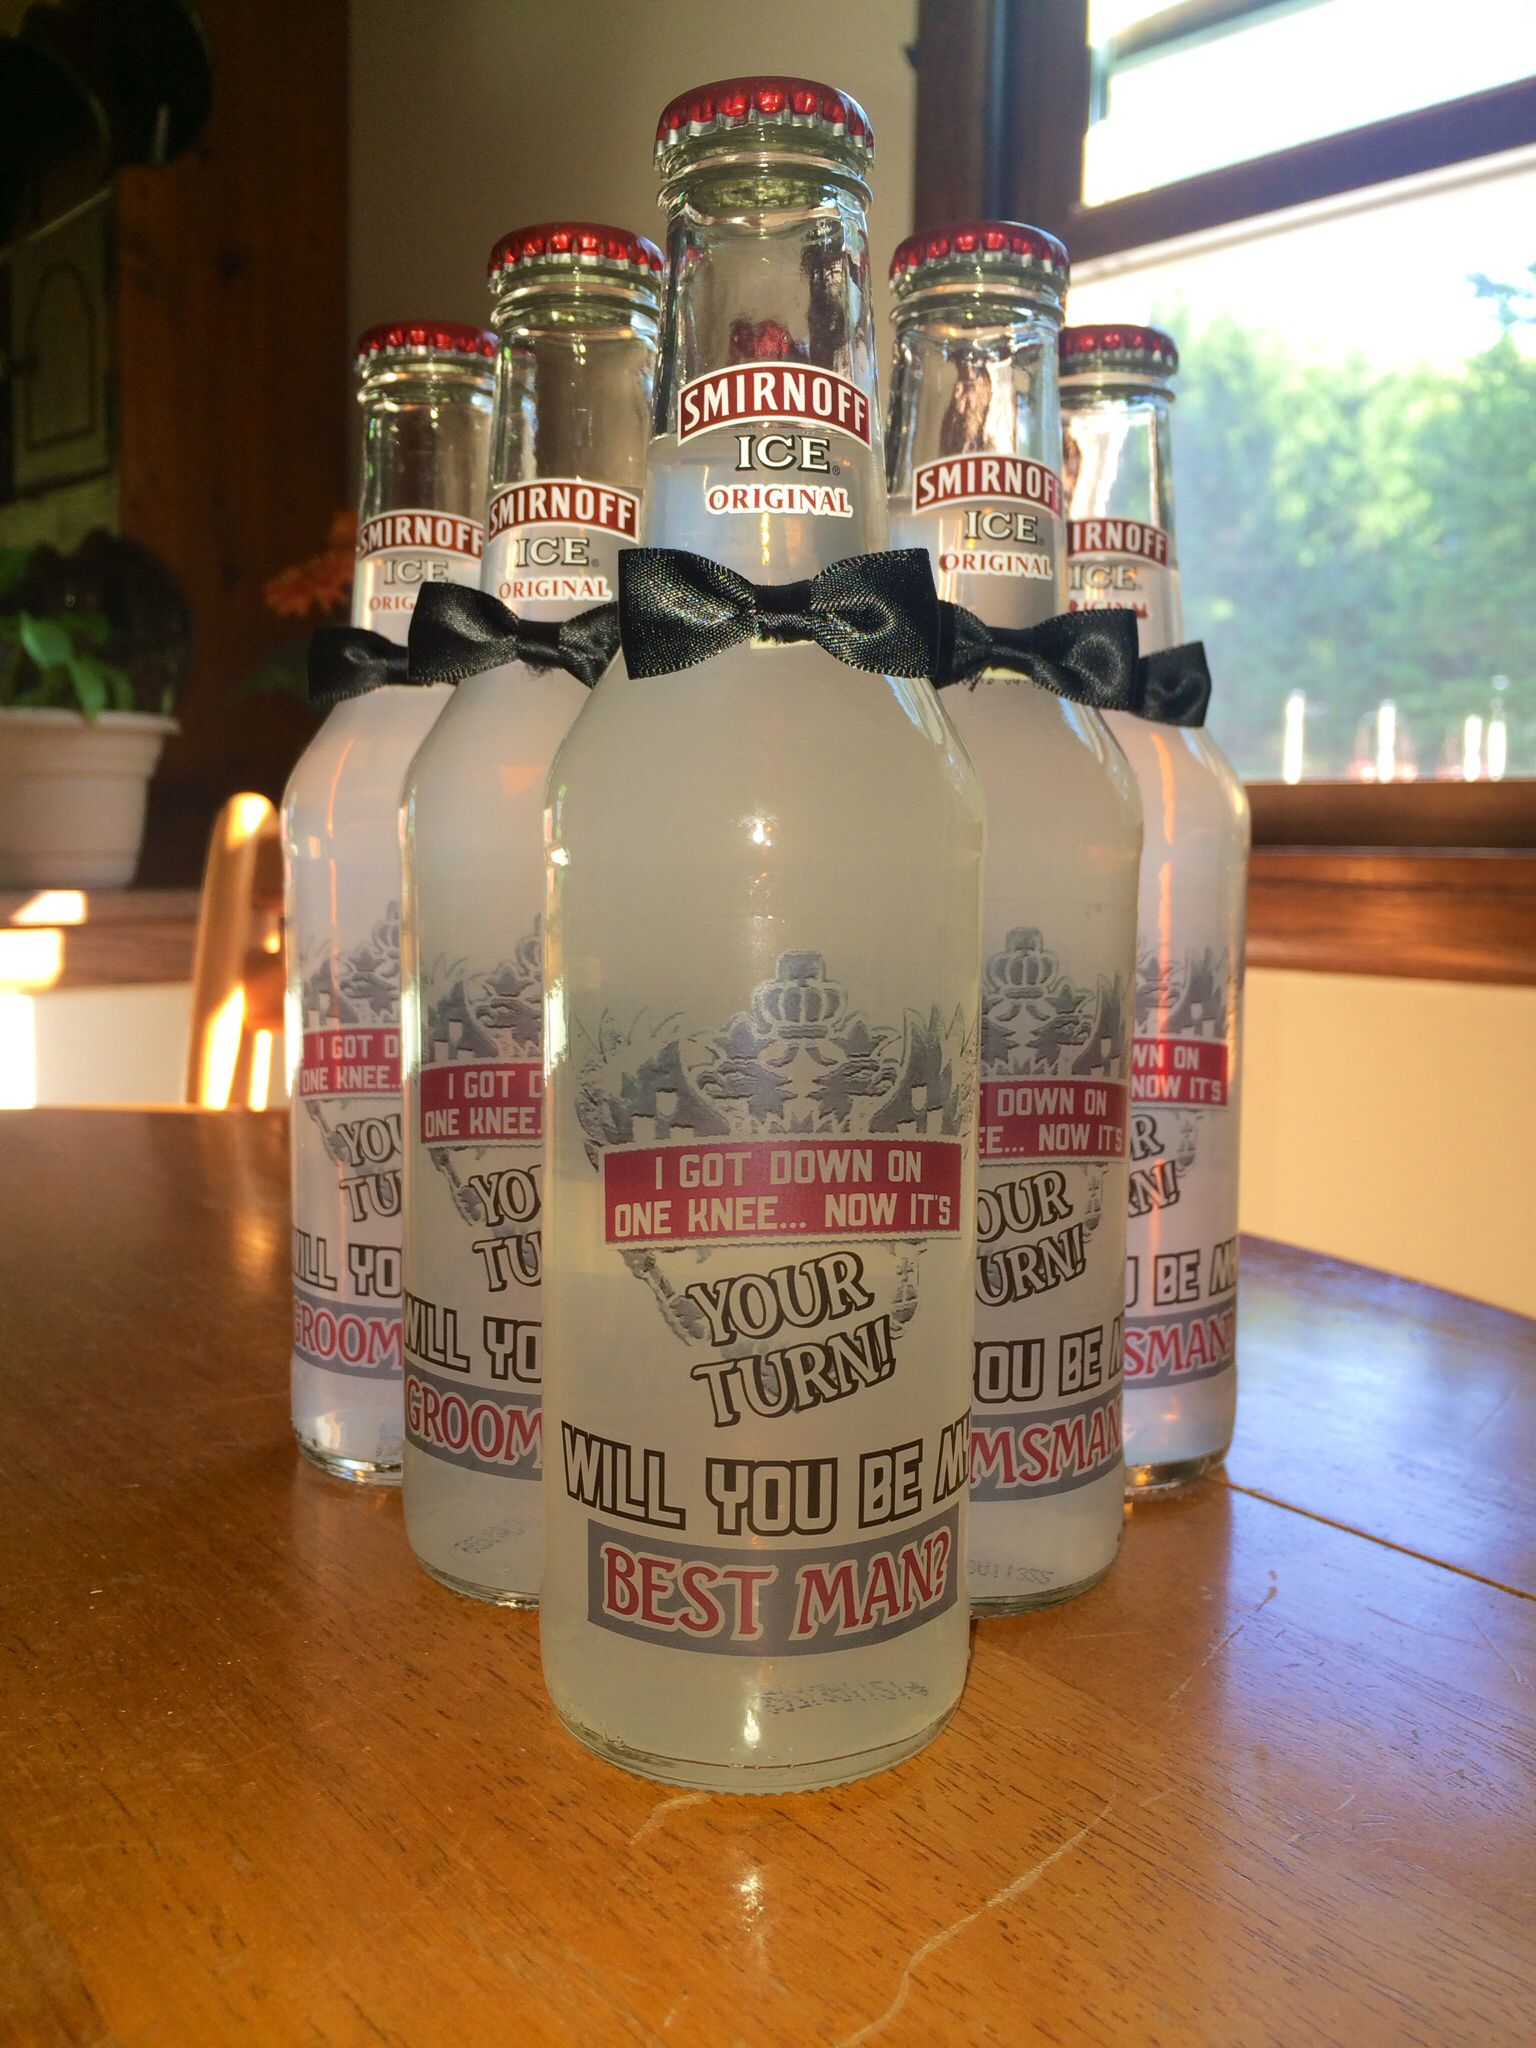 smirnoff ice icing groomsmen will you be my best man will you be